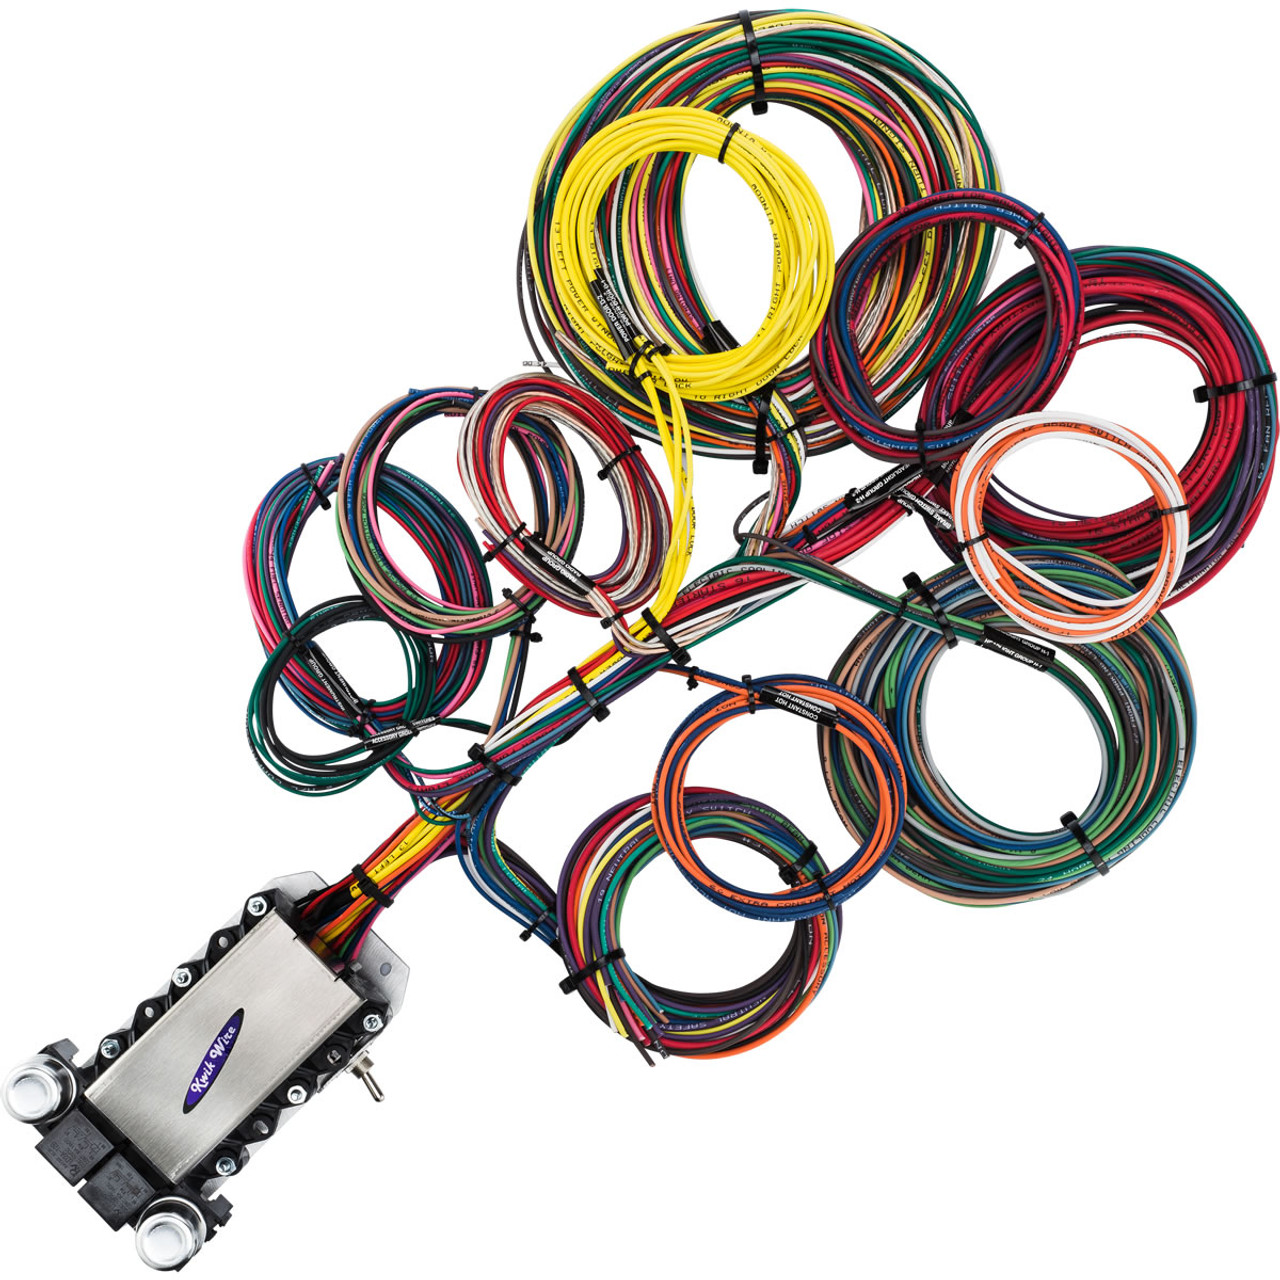 22 Circuit Ford Wire Harness Electrify Your Ride Wiring Protection